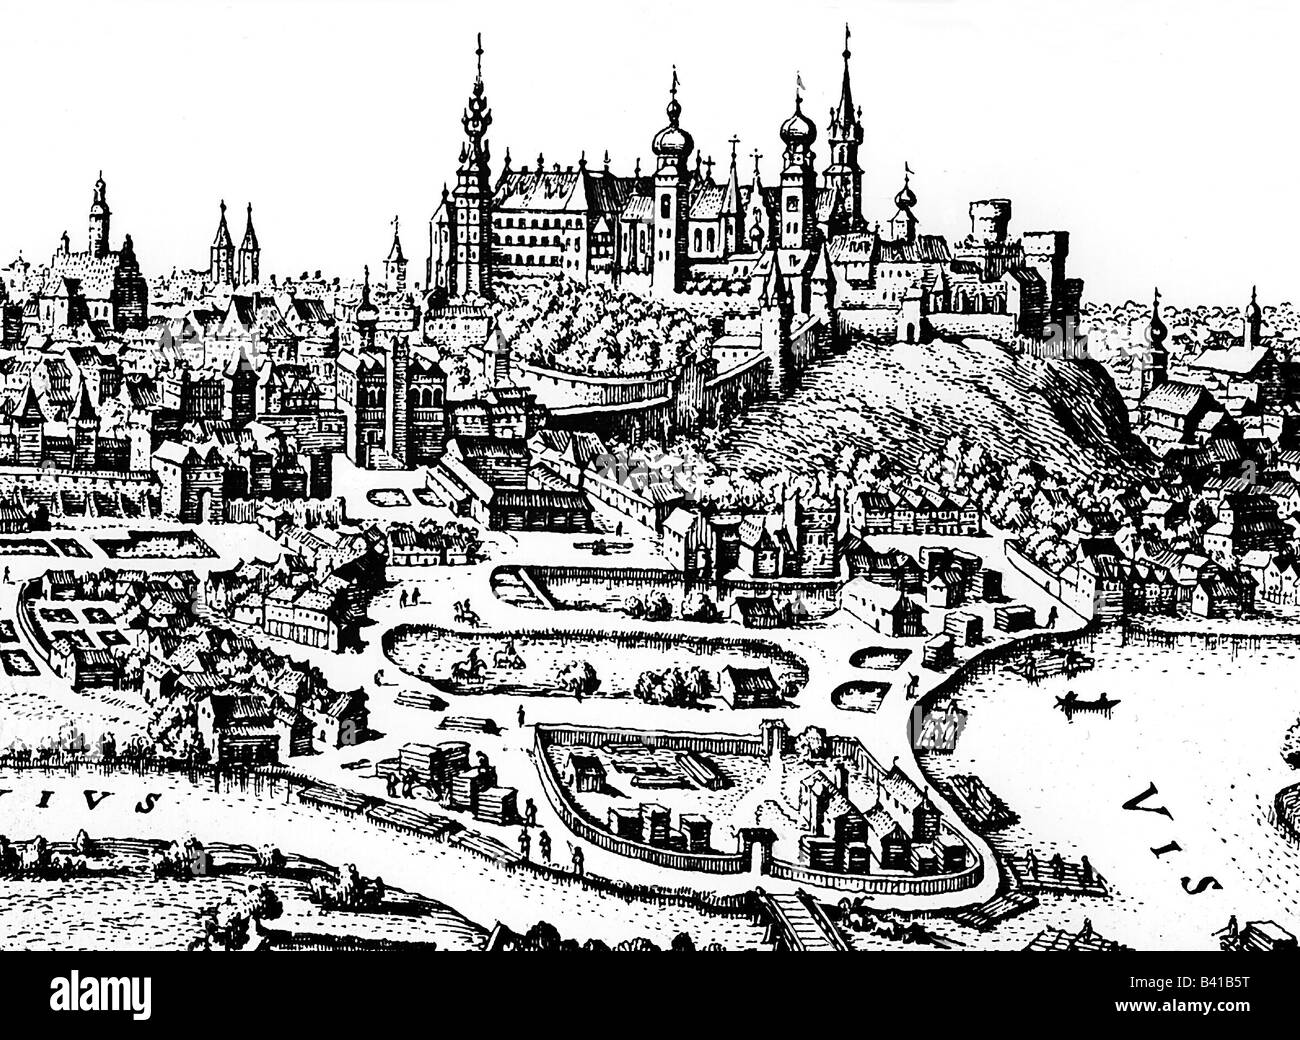 travel / geography, Poland, Cracow, cityscape, engraving by Matthäus Merian, 17th century, historic, historical, Stock Photo